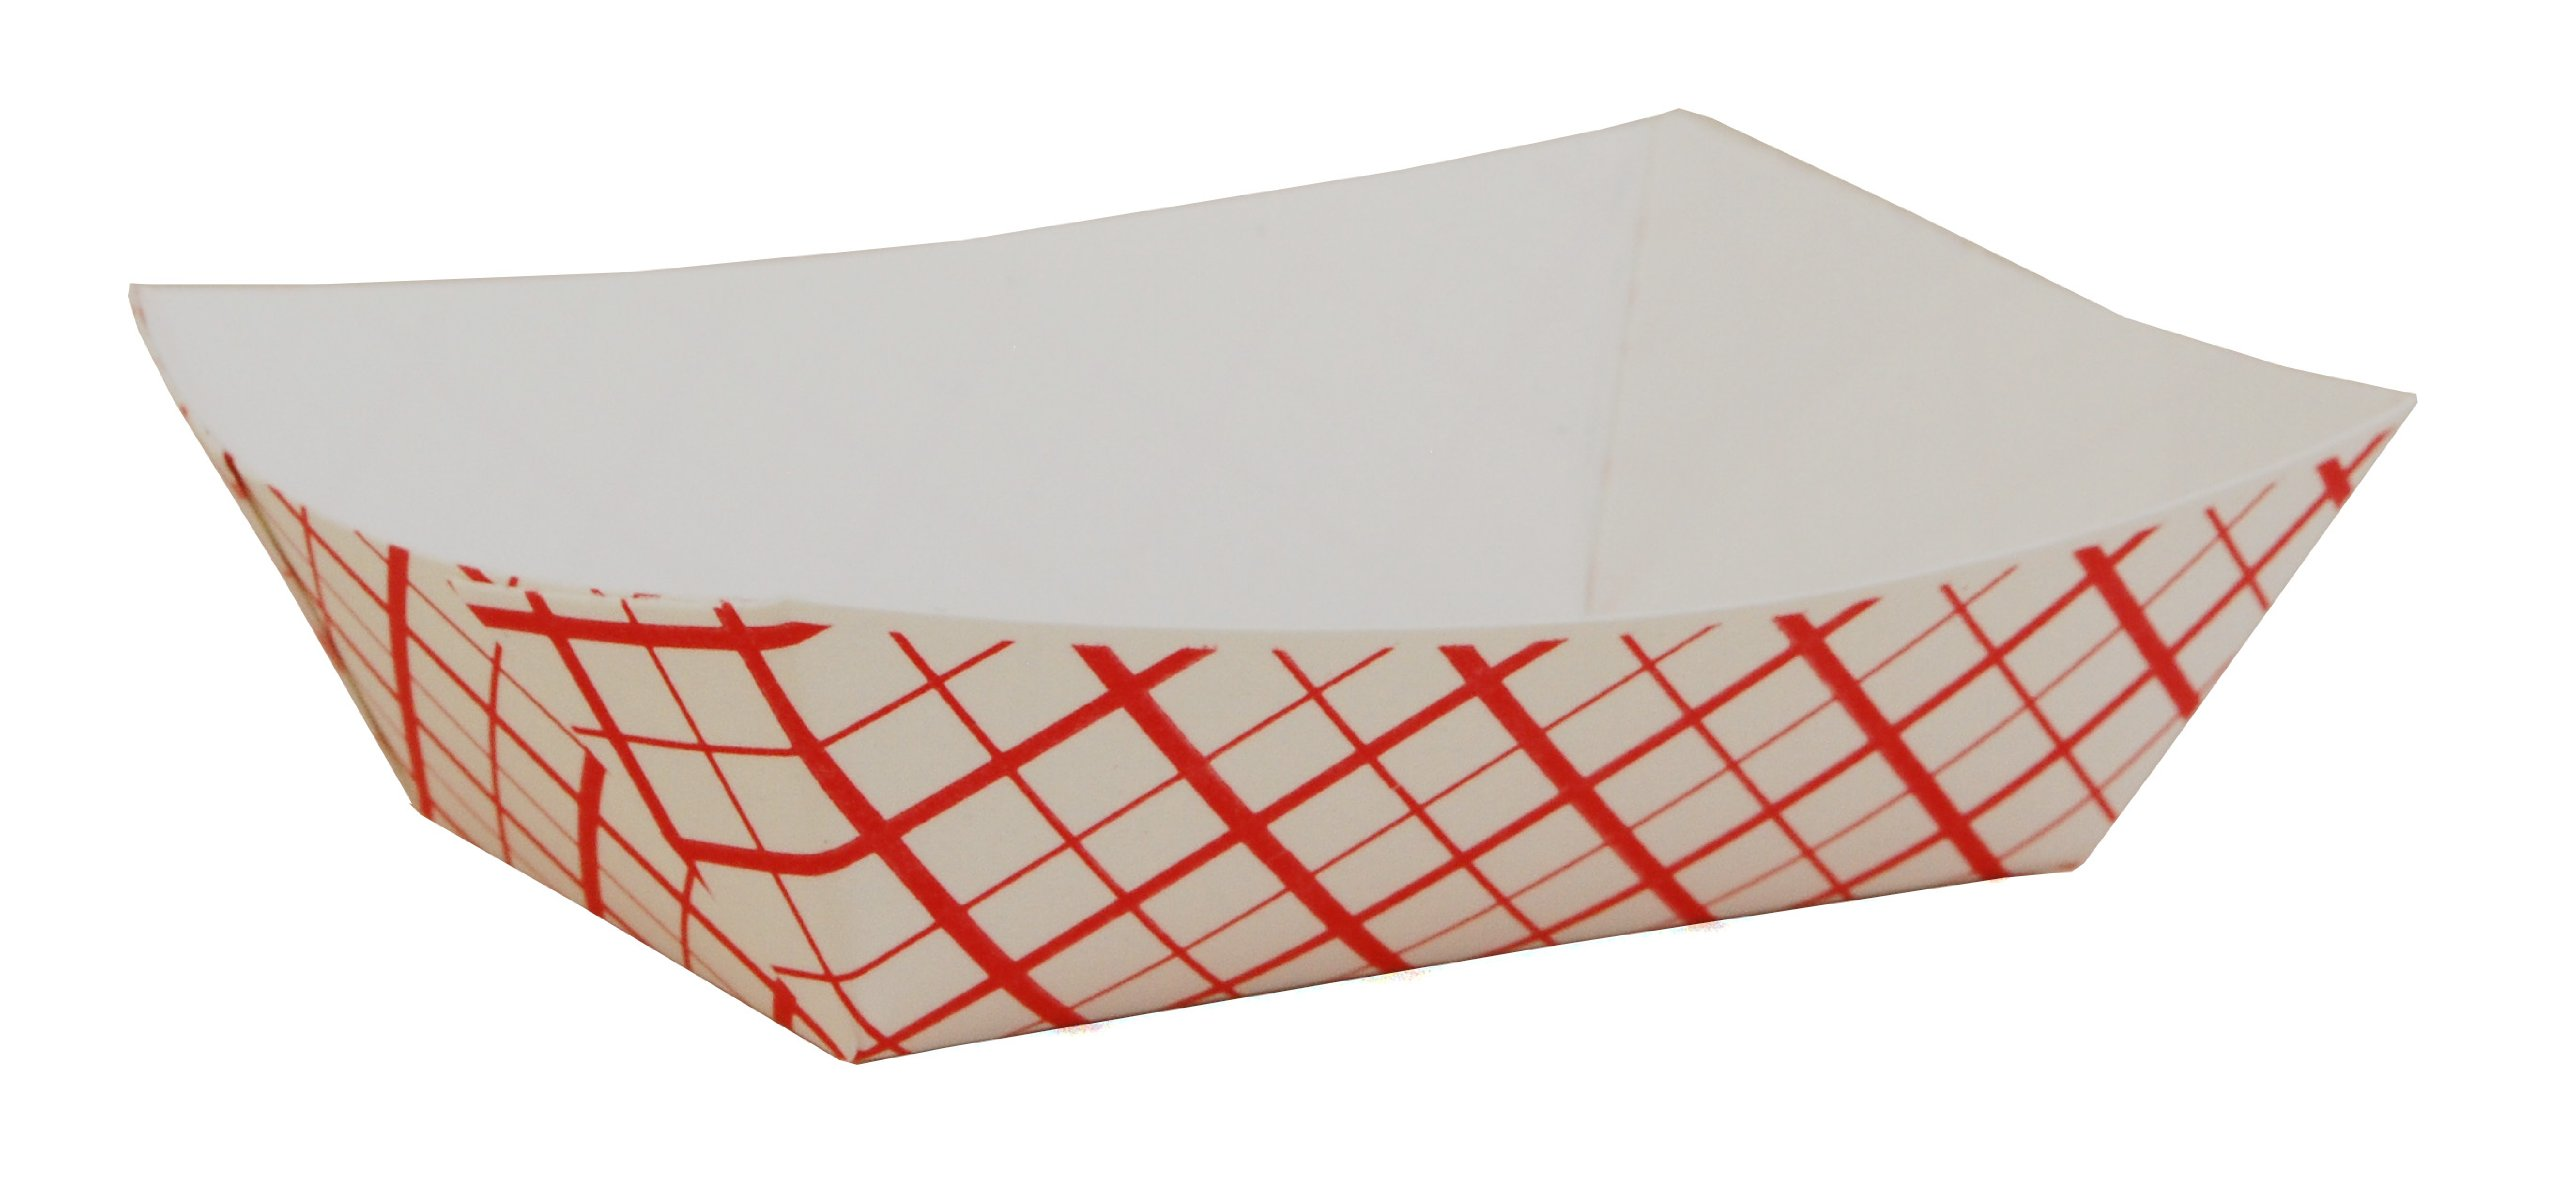 Southern Champion Tray 0409#50 Southland Red Check Paperboard Food Tray/Boat/Bowl, 1/2-lb. Capacity (Case of 1000)